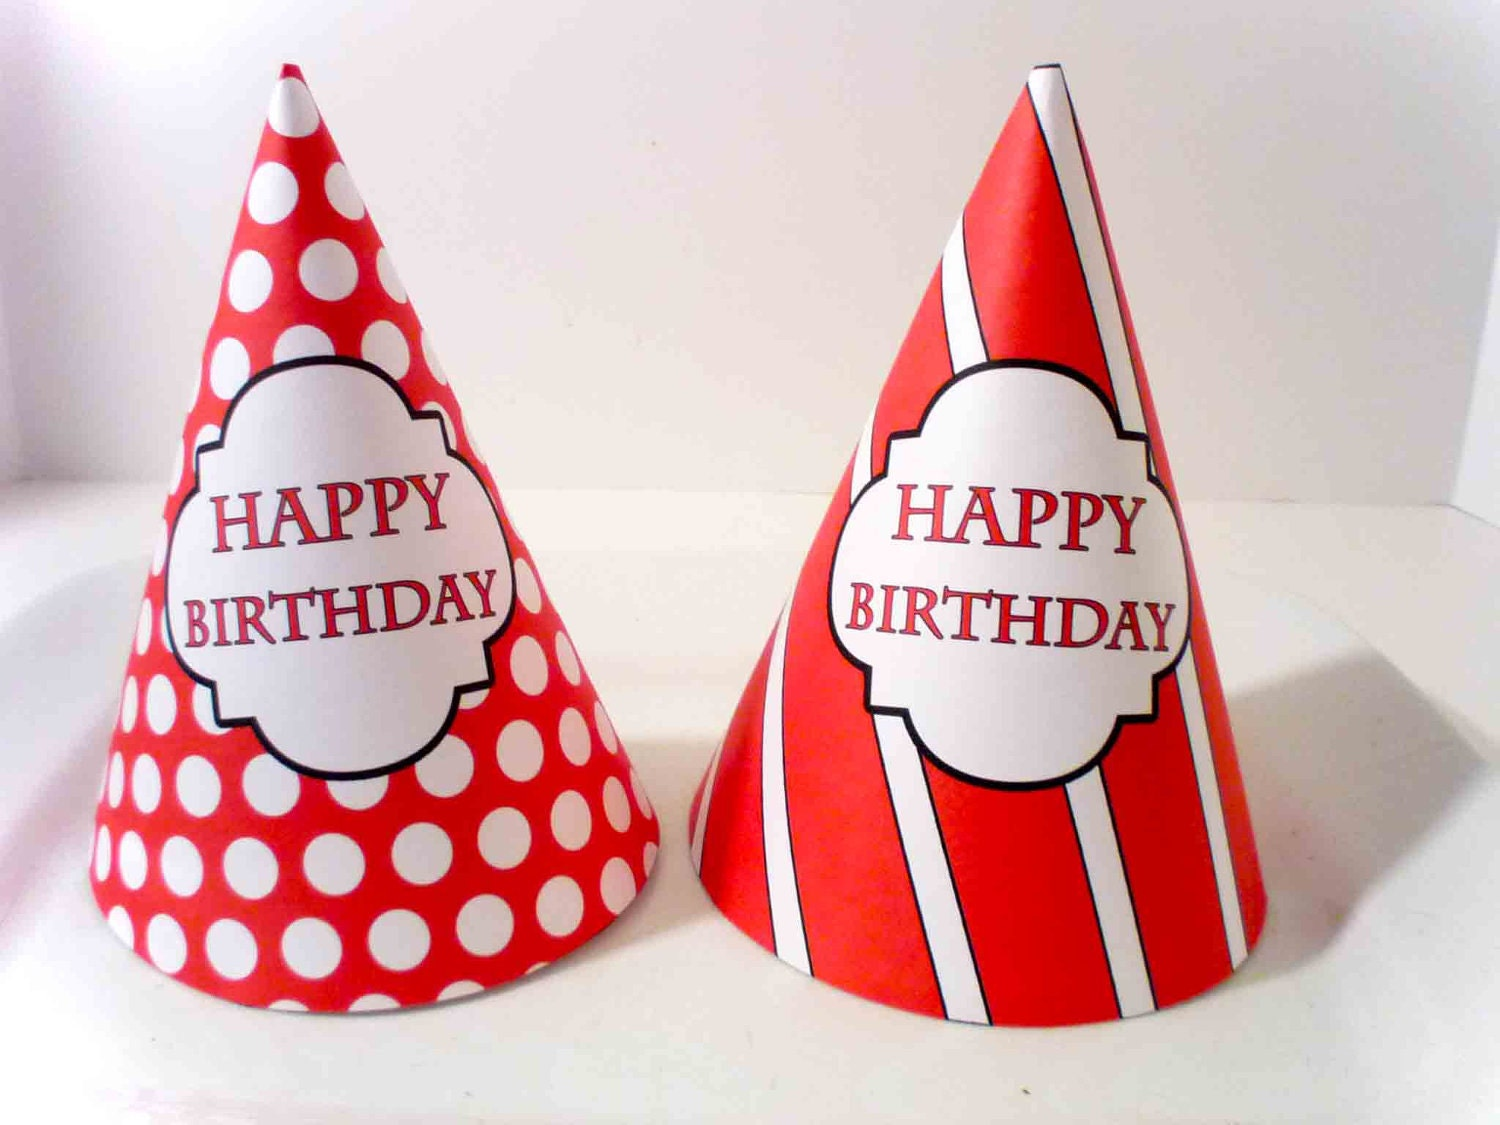 Sassy image pertaining to printable birthday hat